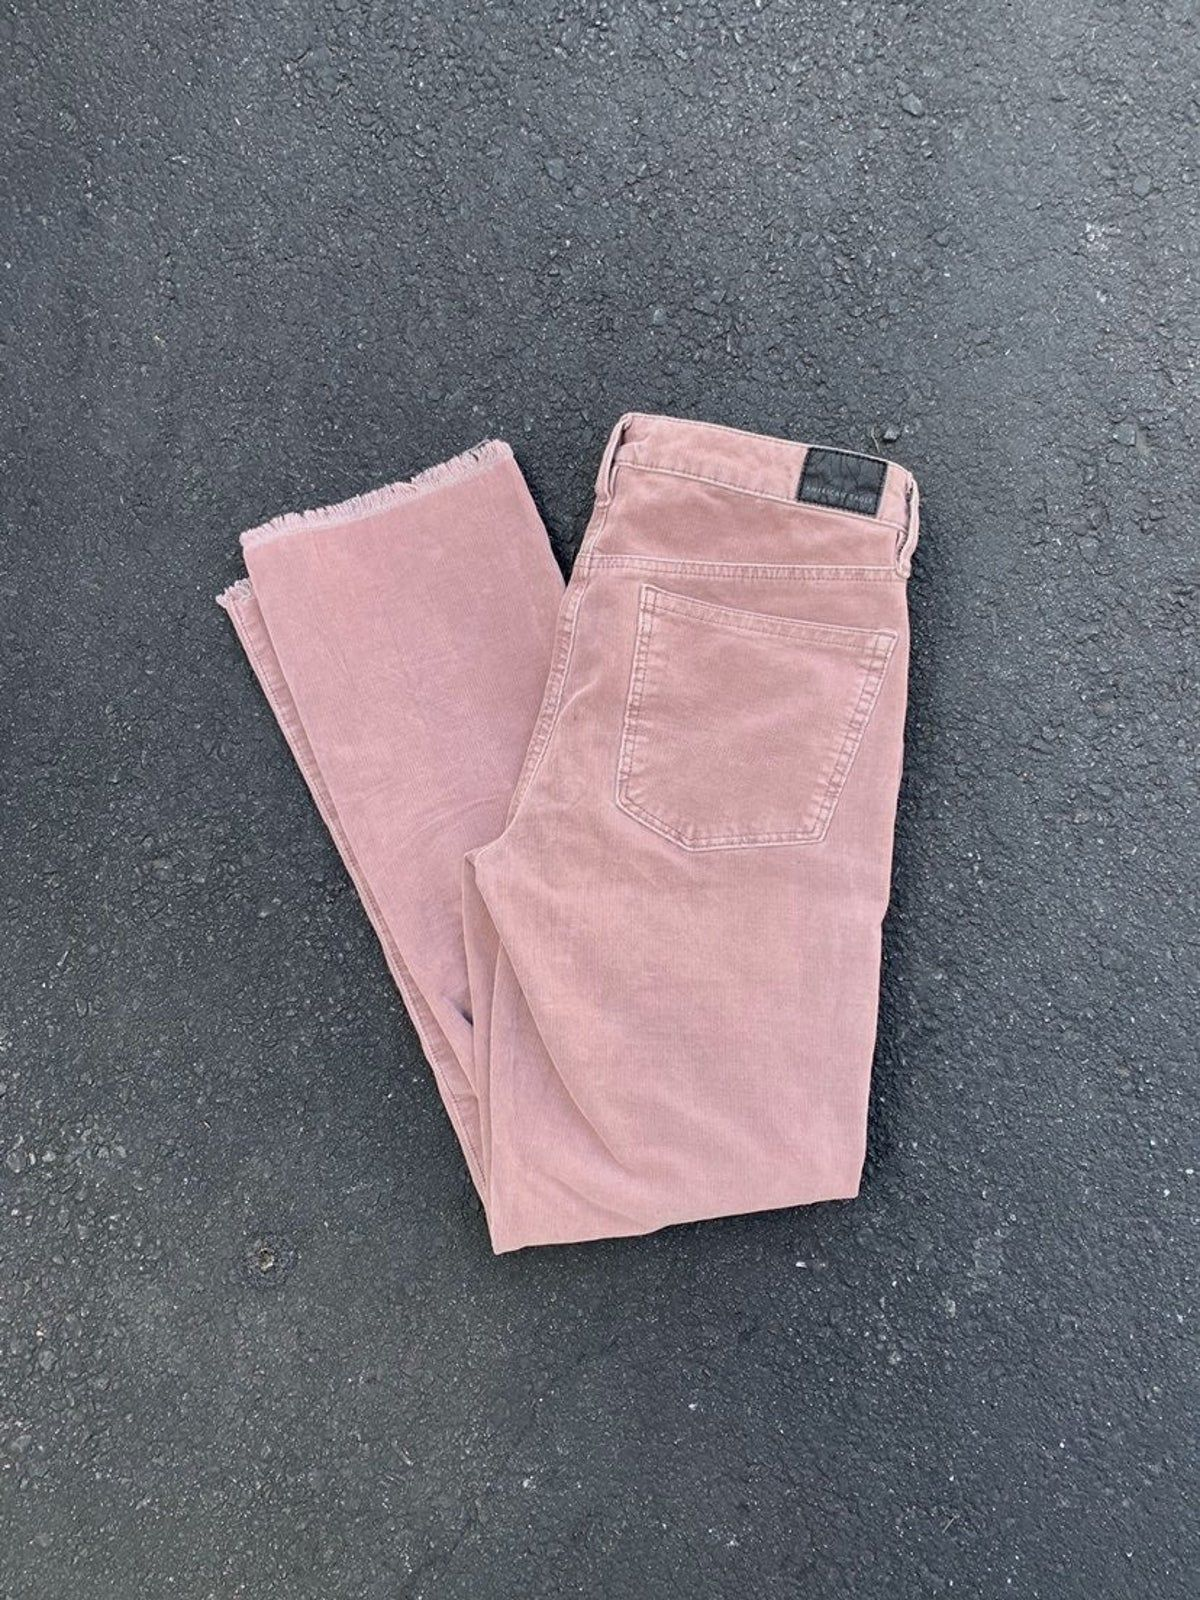 "American Eagle NEVER WORN High waisted Cropped flare corduroy pants In rose Size 8 Inseam 27.5"" Rise 8"" Waist 28.5"" Hip 38"" Super stretchy NWOT #americanEagle, #corduroypants , cropped jeans , straight leg jeans , high waisted jeans, corduroy jeans, corduroy pants , #Americanvintage, #modernthrift @americaneagle rose jeans, pink jeans, light pink, 90s"